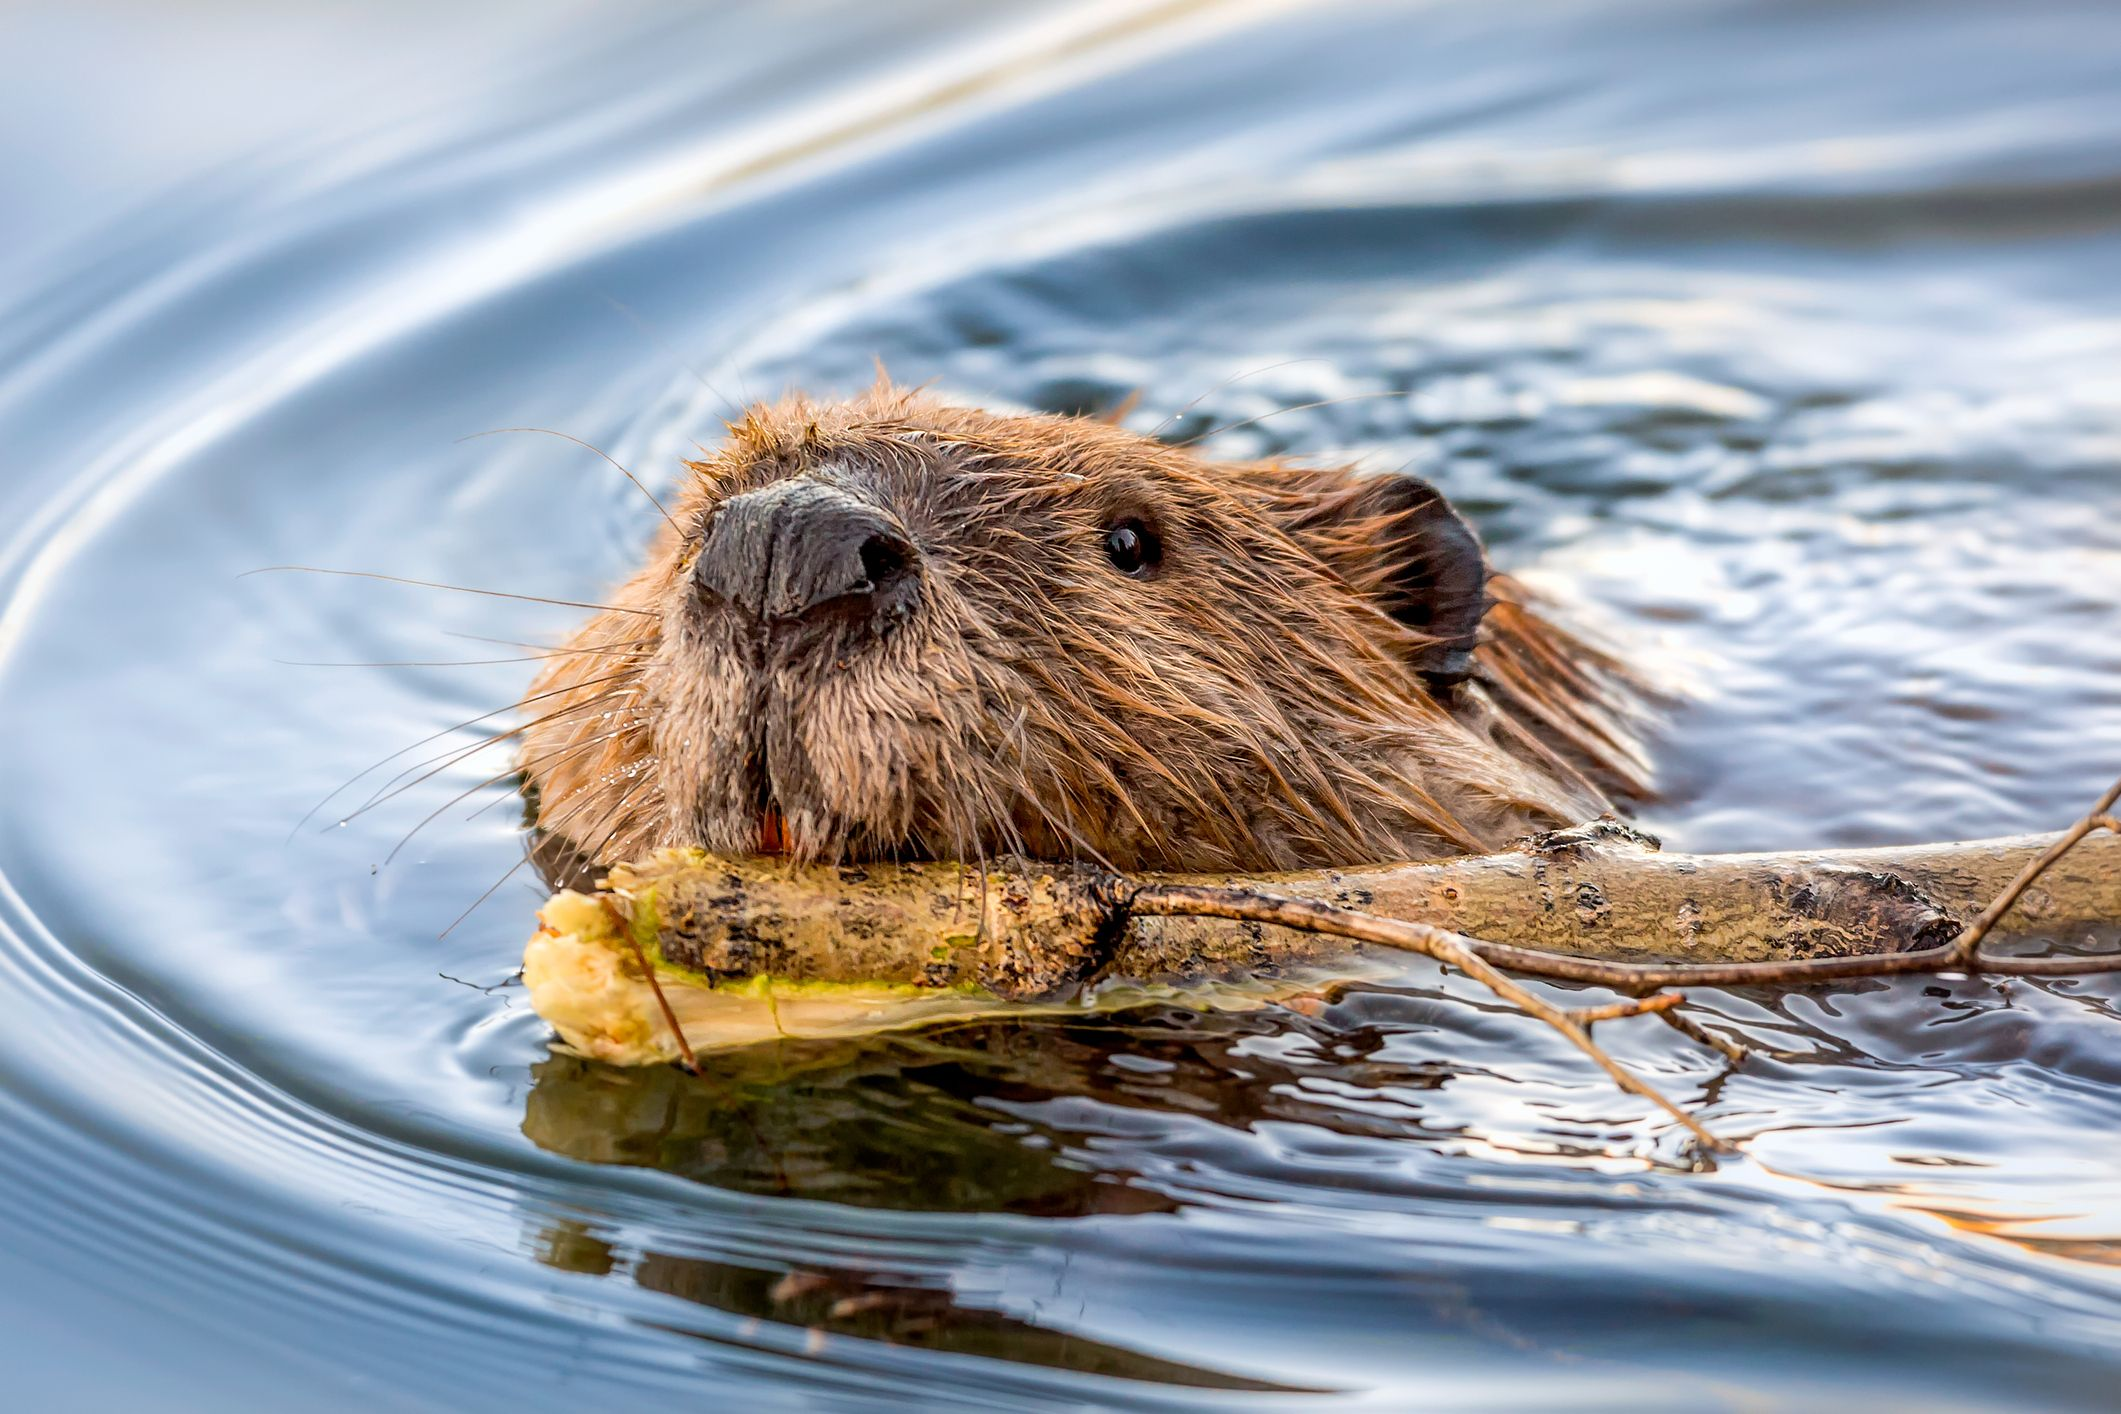 Beavers will be reintroduced in two south England locations next spring, say The National Trust